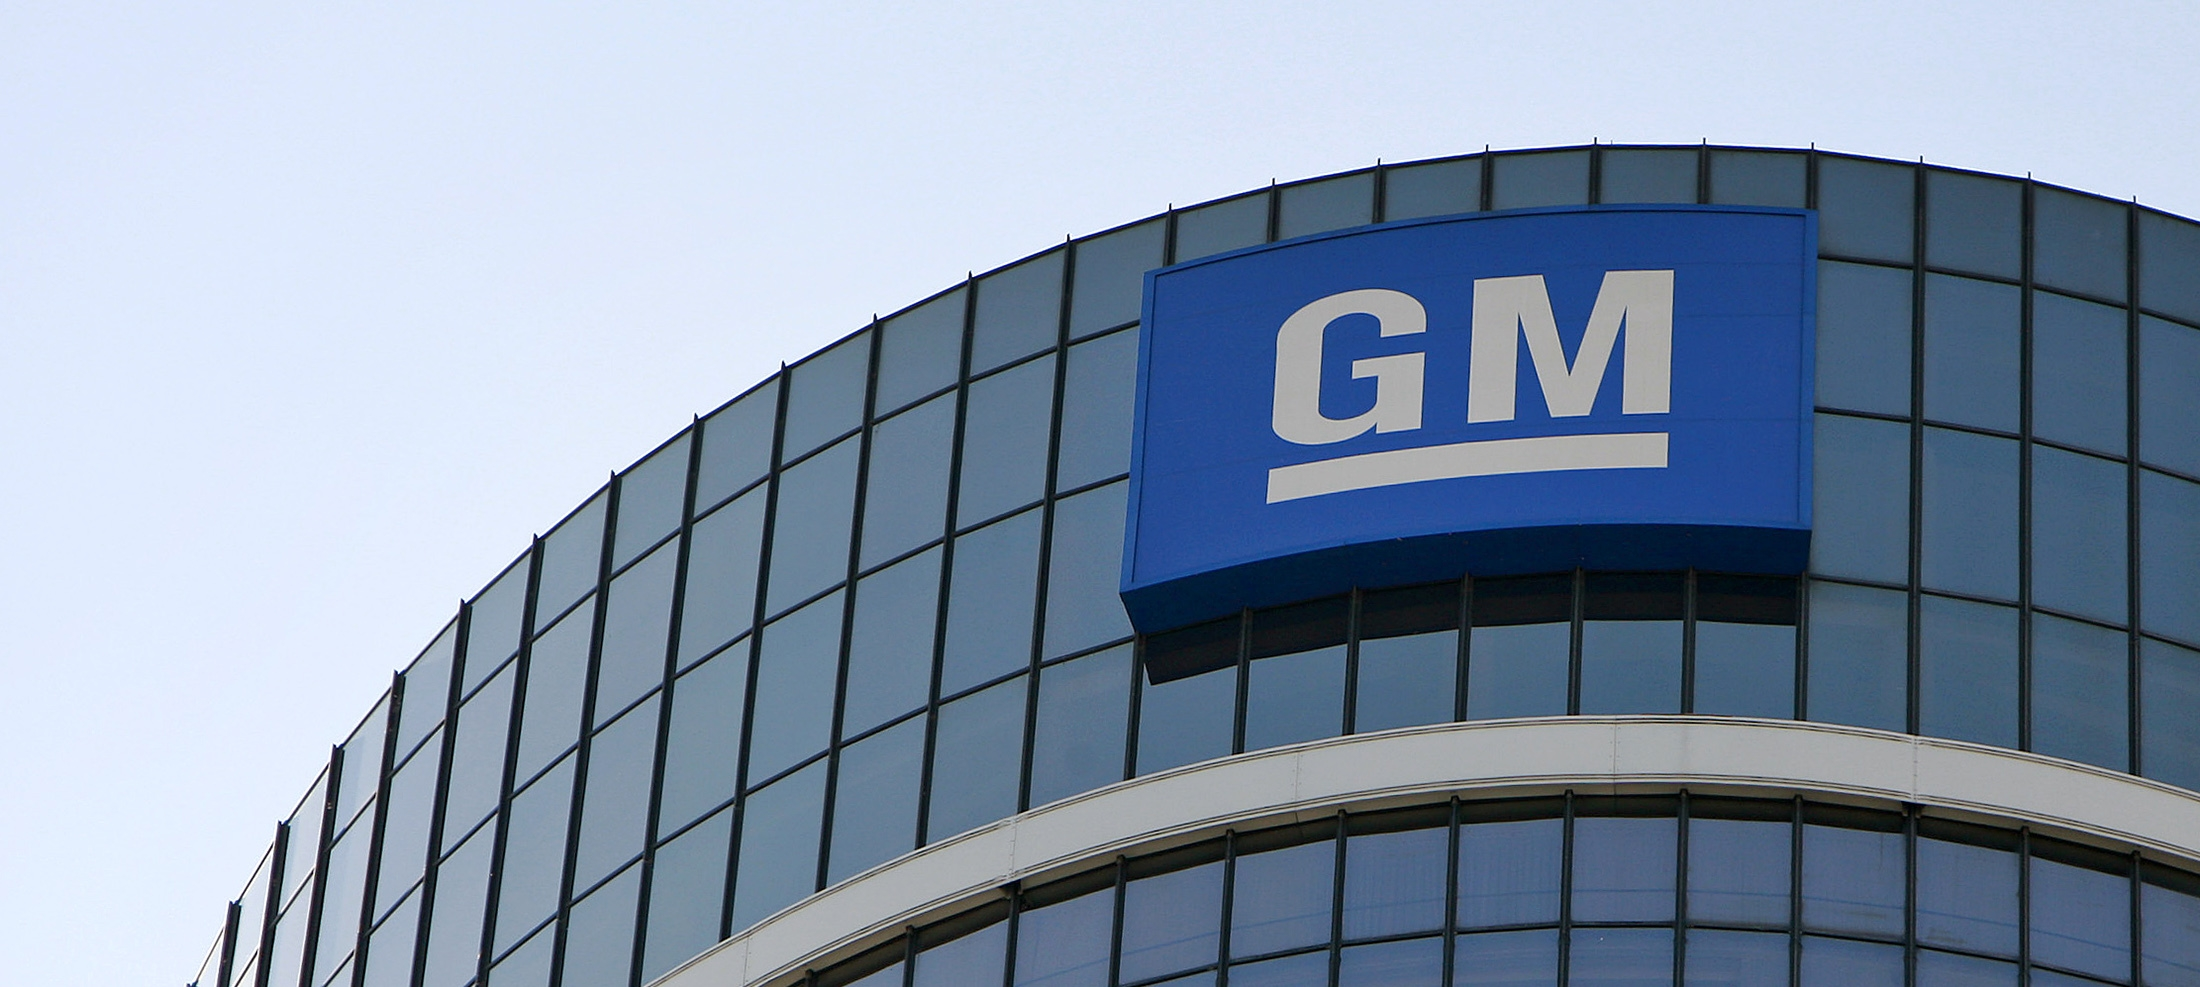 GM to Move Work to Canada From Mexico in Labor Deal, Union Says